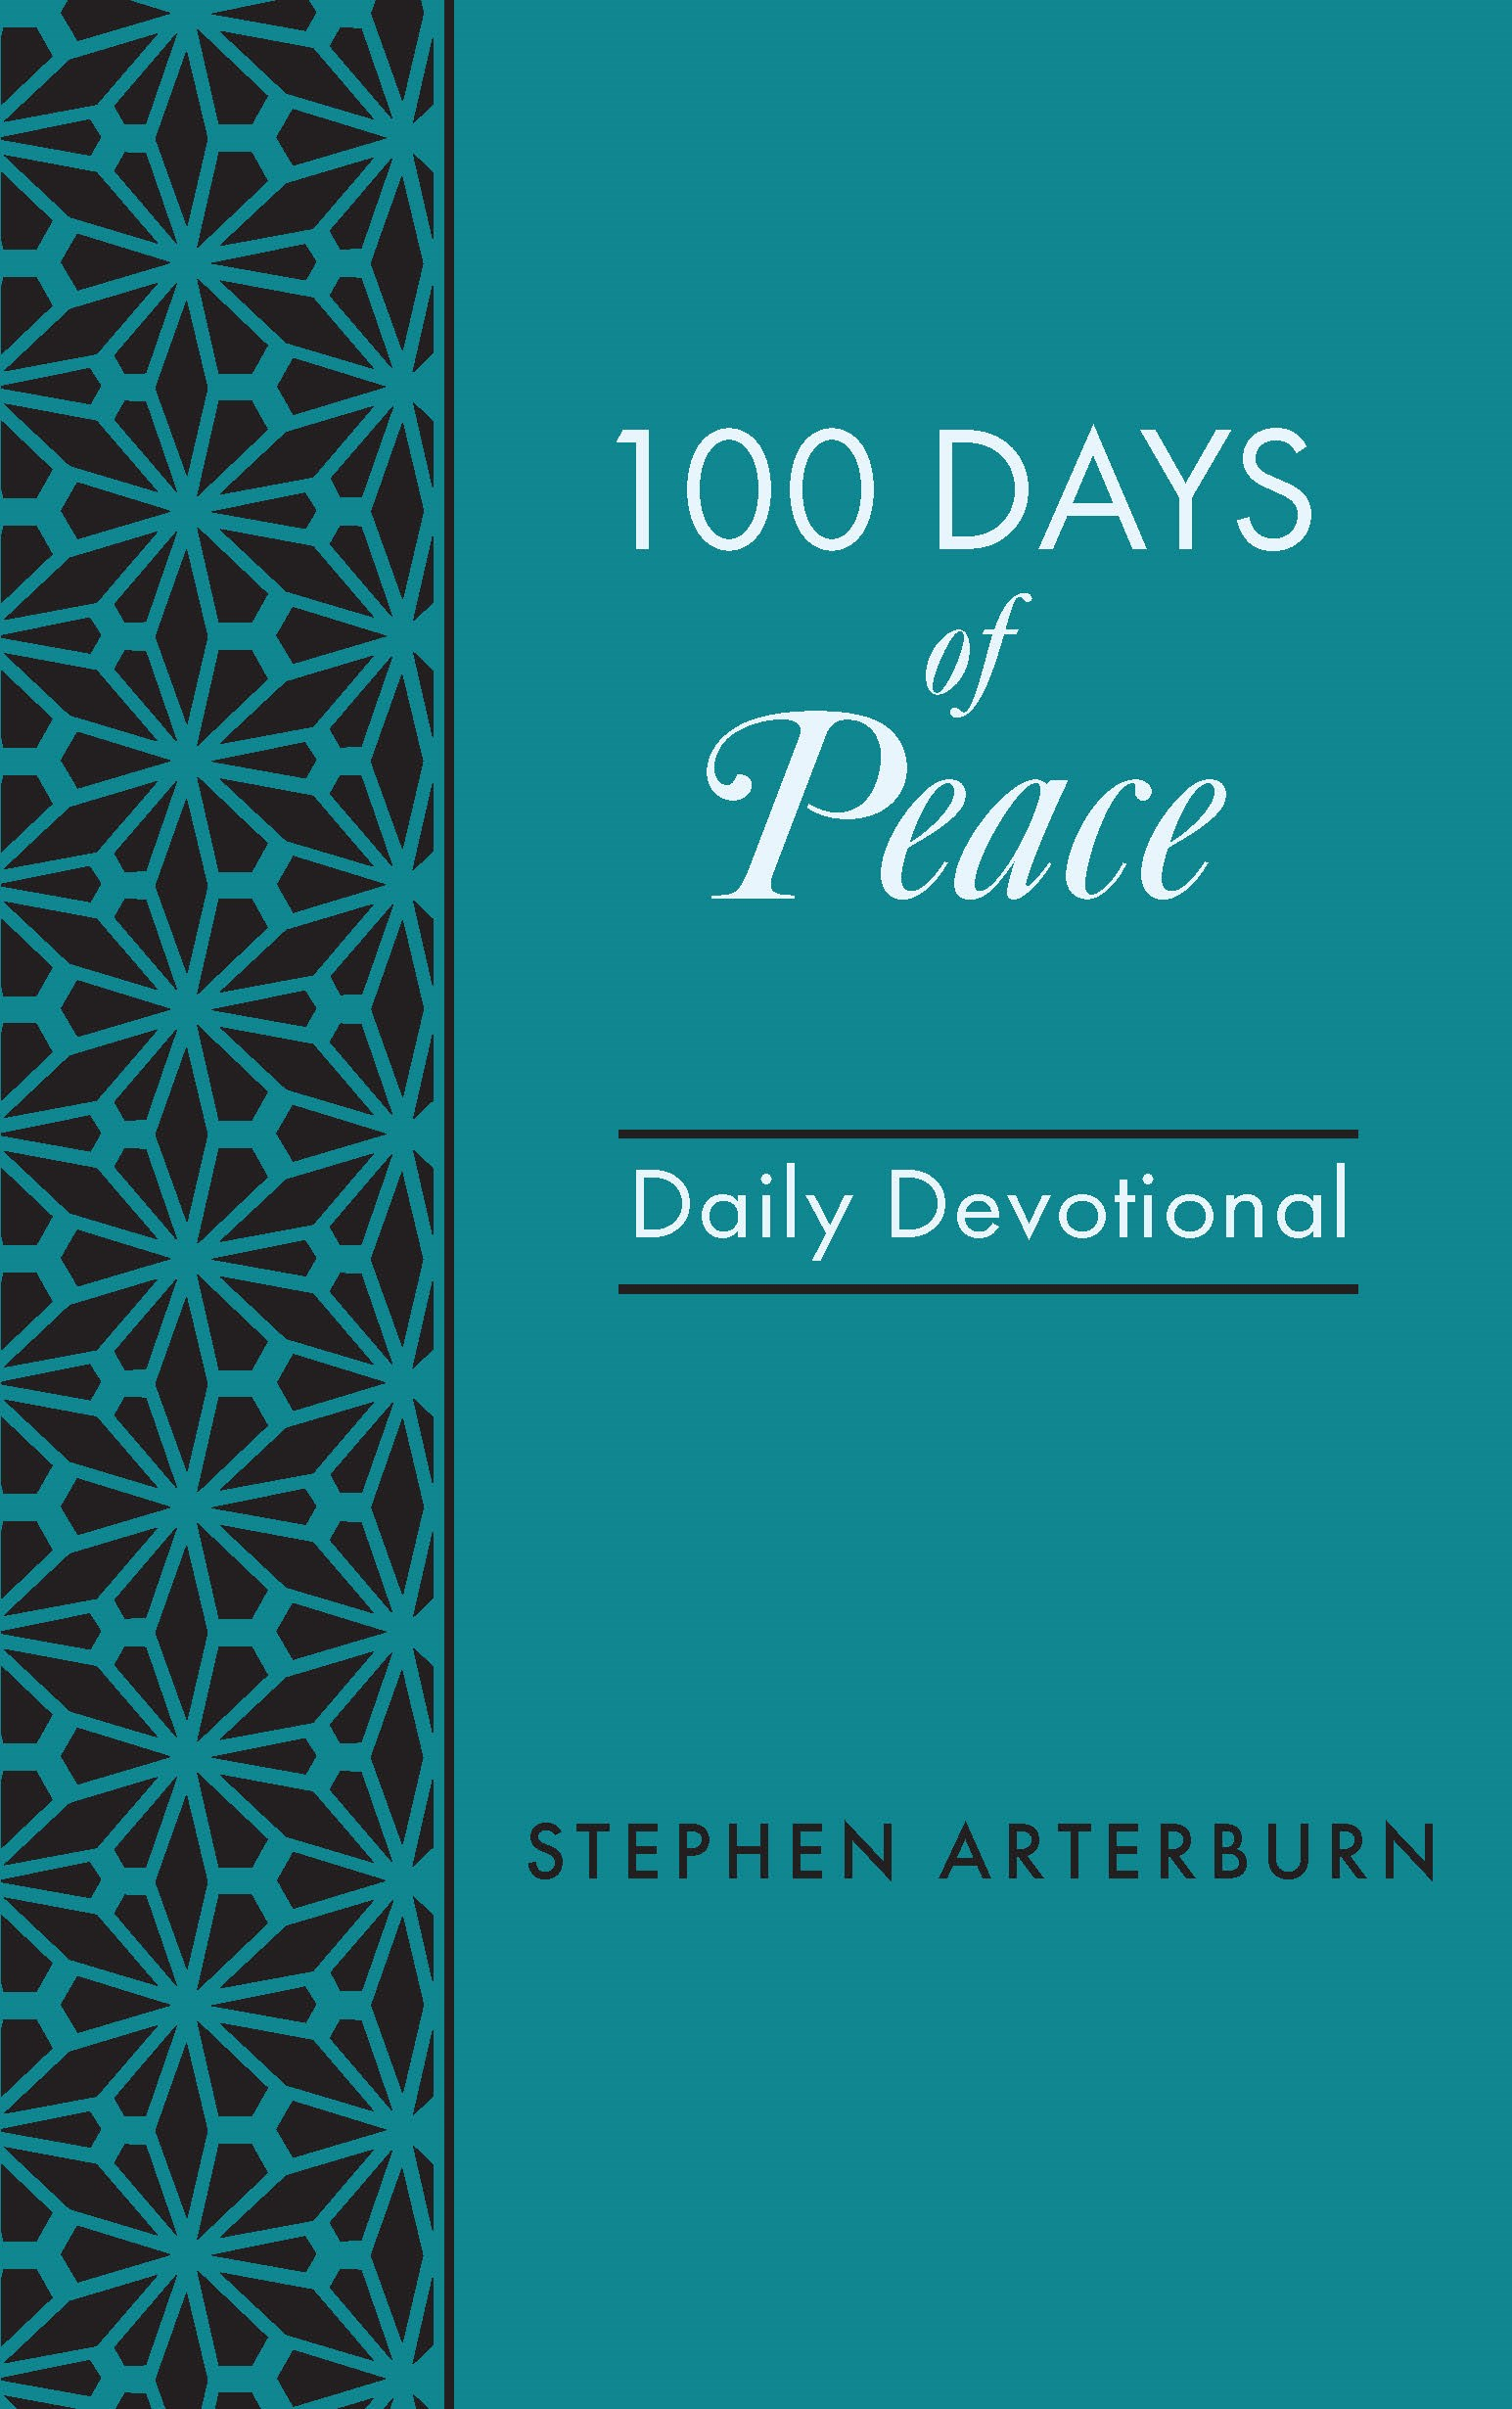 100 Days Of Peace Daily Devotional